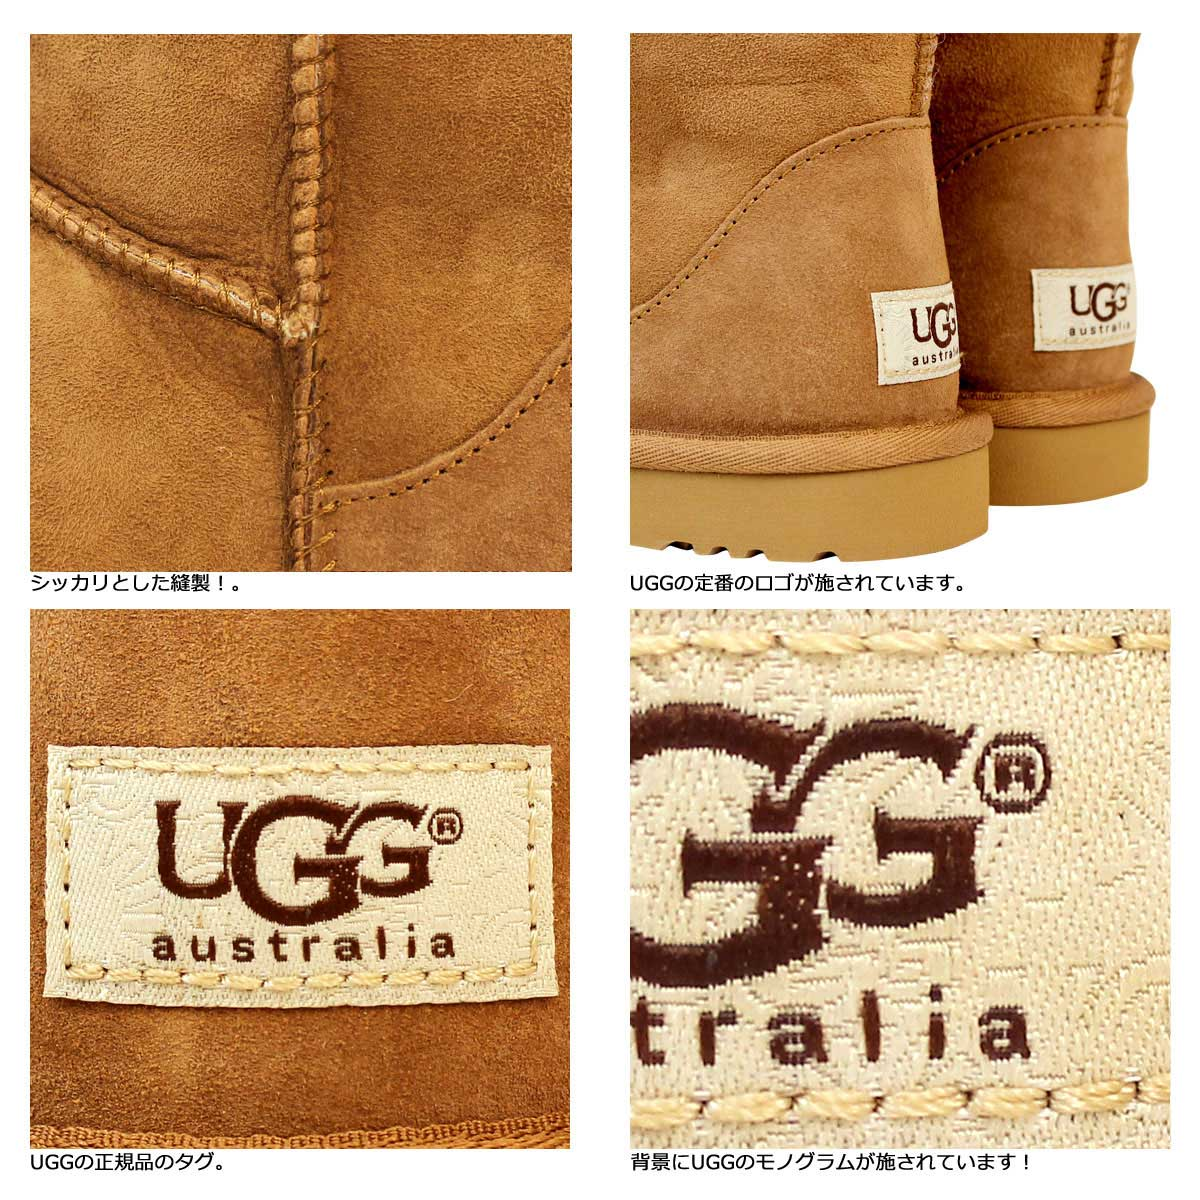 ★ 38% off ★ UGG Ugg Classic Tall Shearling boots 5815 WOMENS CLASSIC TALL Sheepskin ladies 2013 FALL new